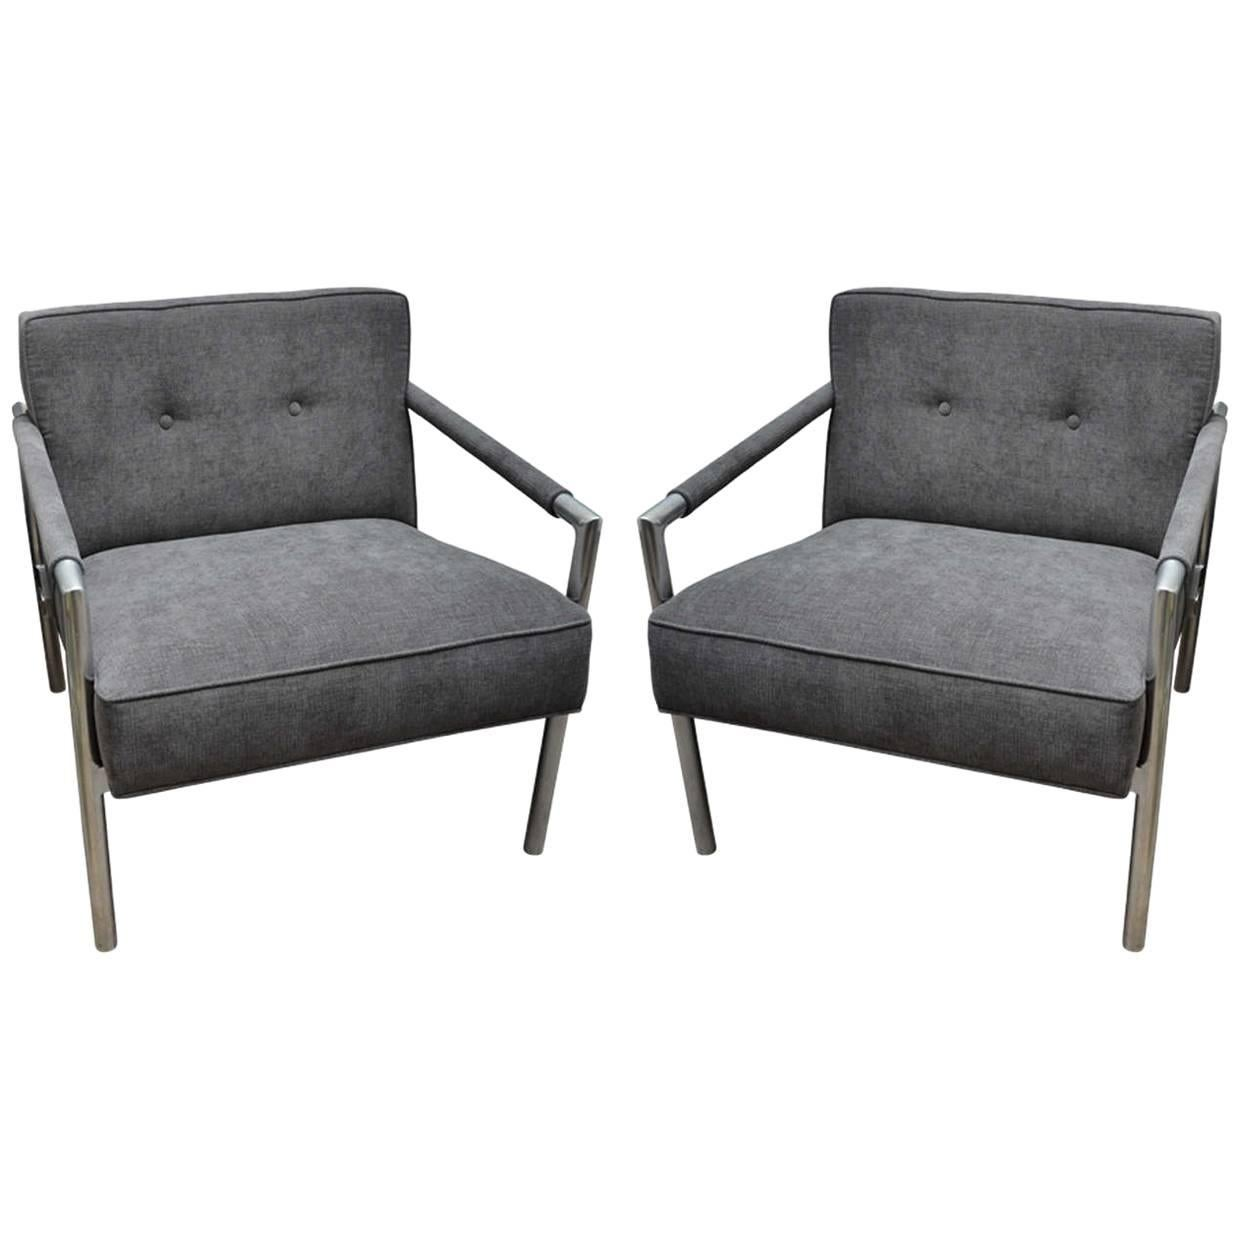 Pair of Aluminum Frame Upholstered Chairs in the Style of Harvey Probber